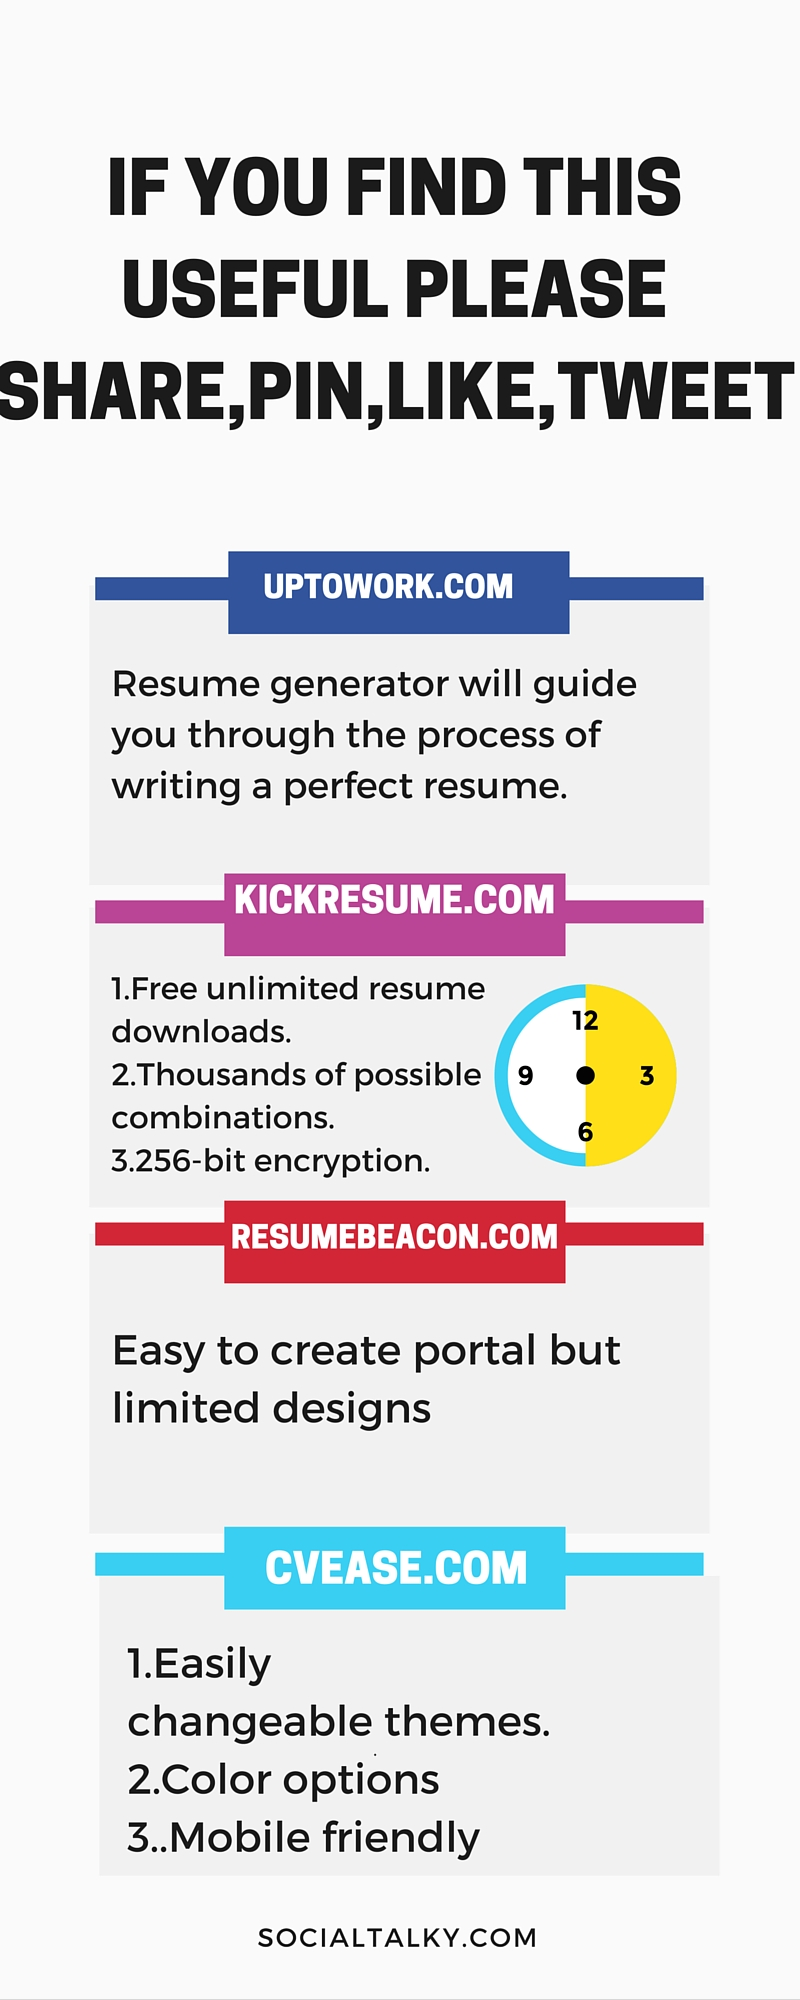 10 resume builders online infographic social talky resume builders online